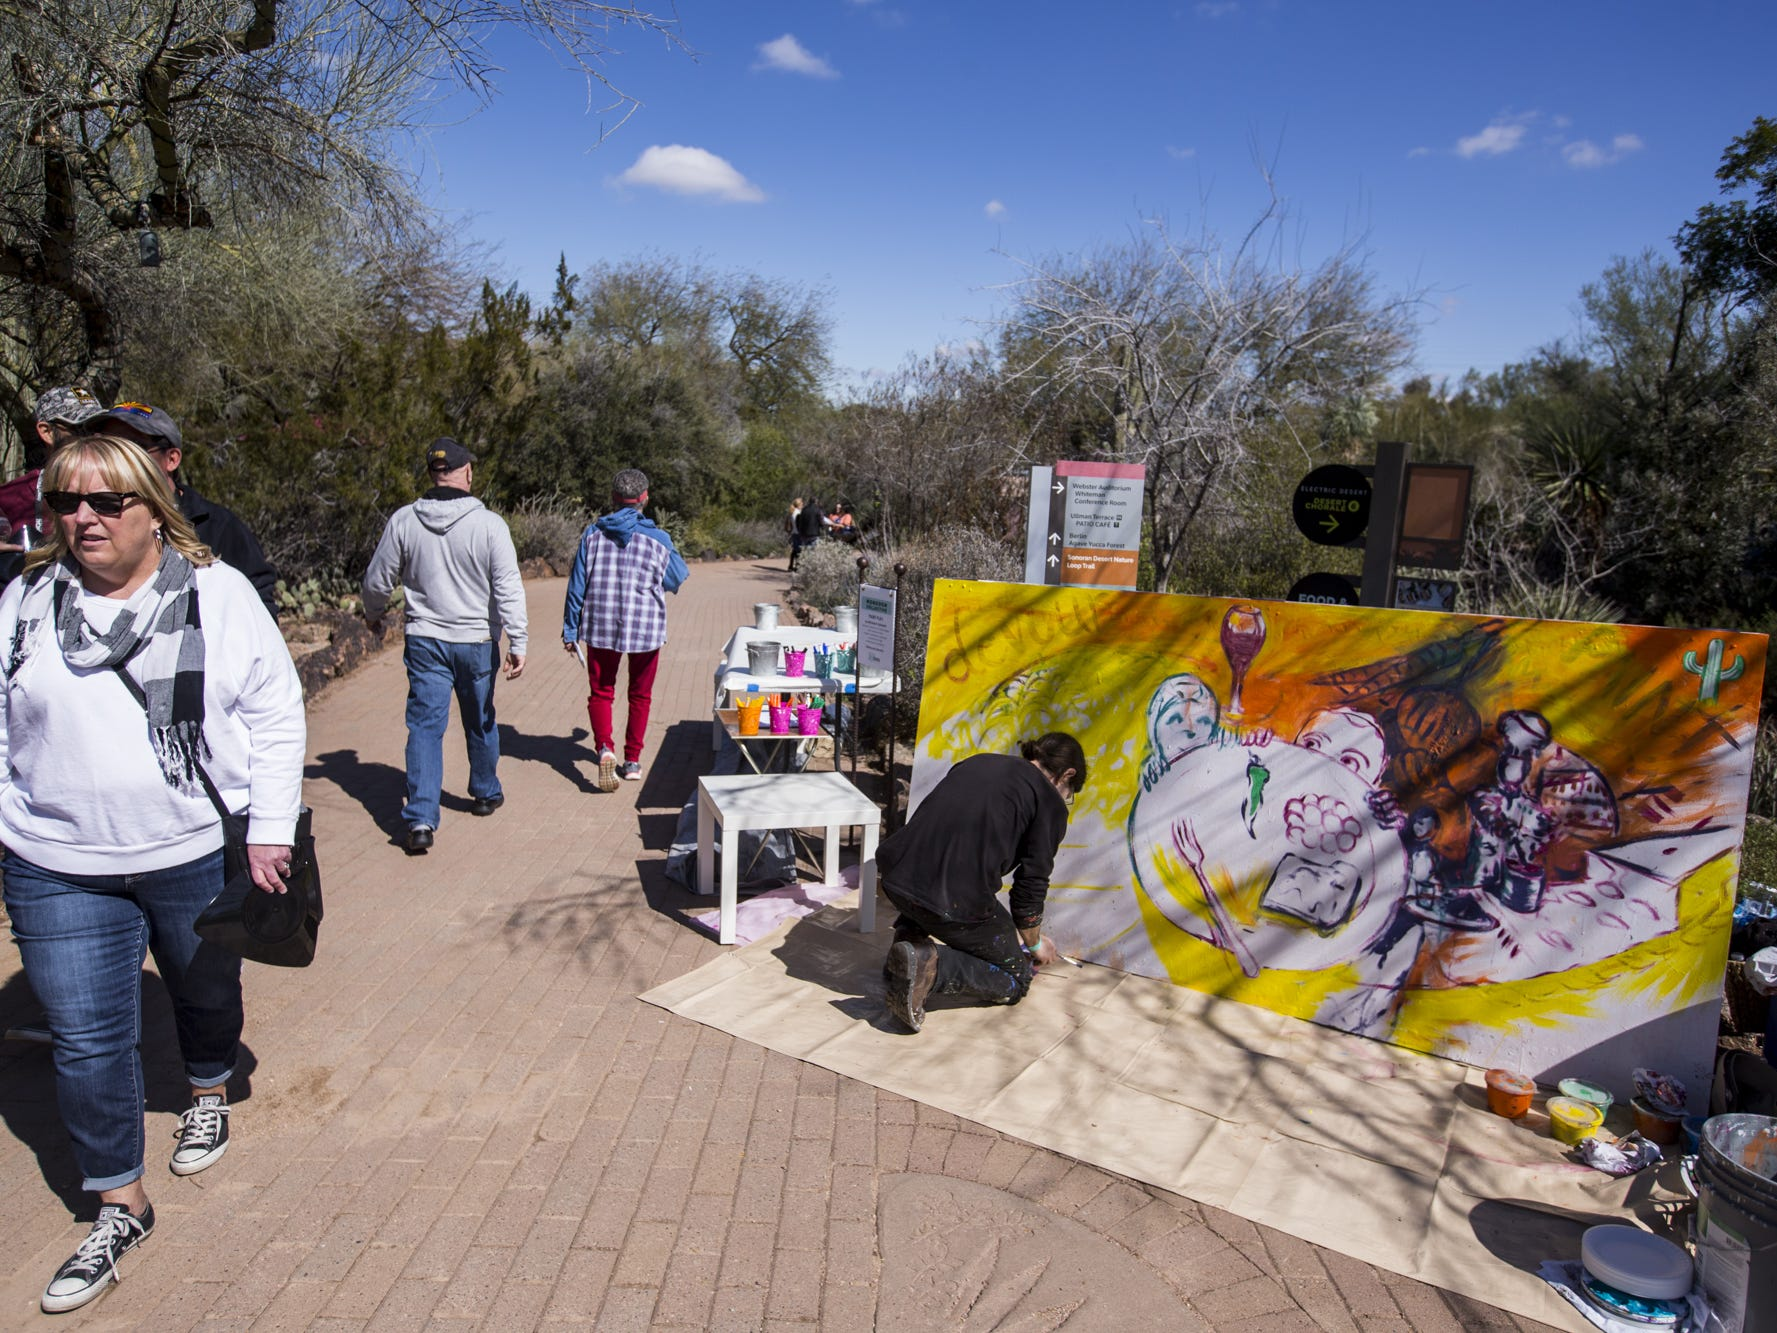 Michael B. Schwartz works on a painting during Day 1 of the Devour Culinary Classic on Saturday, Feb. 23, 2019, at Desert Botanical Garden in Phoenix.